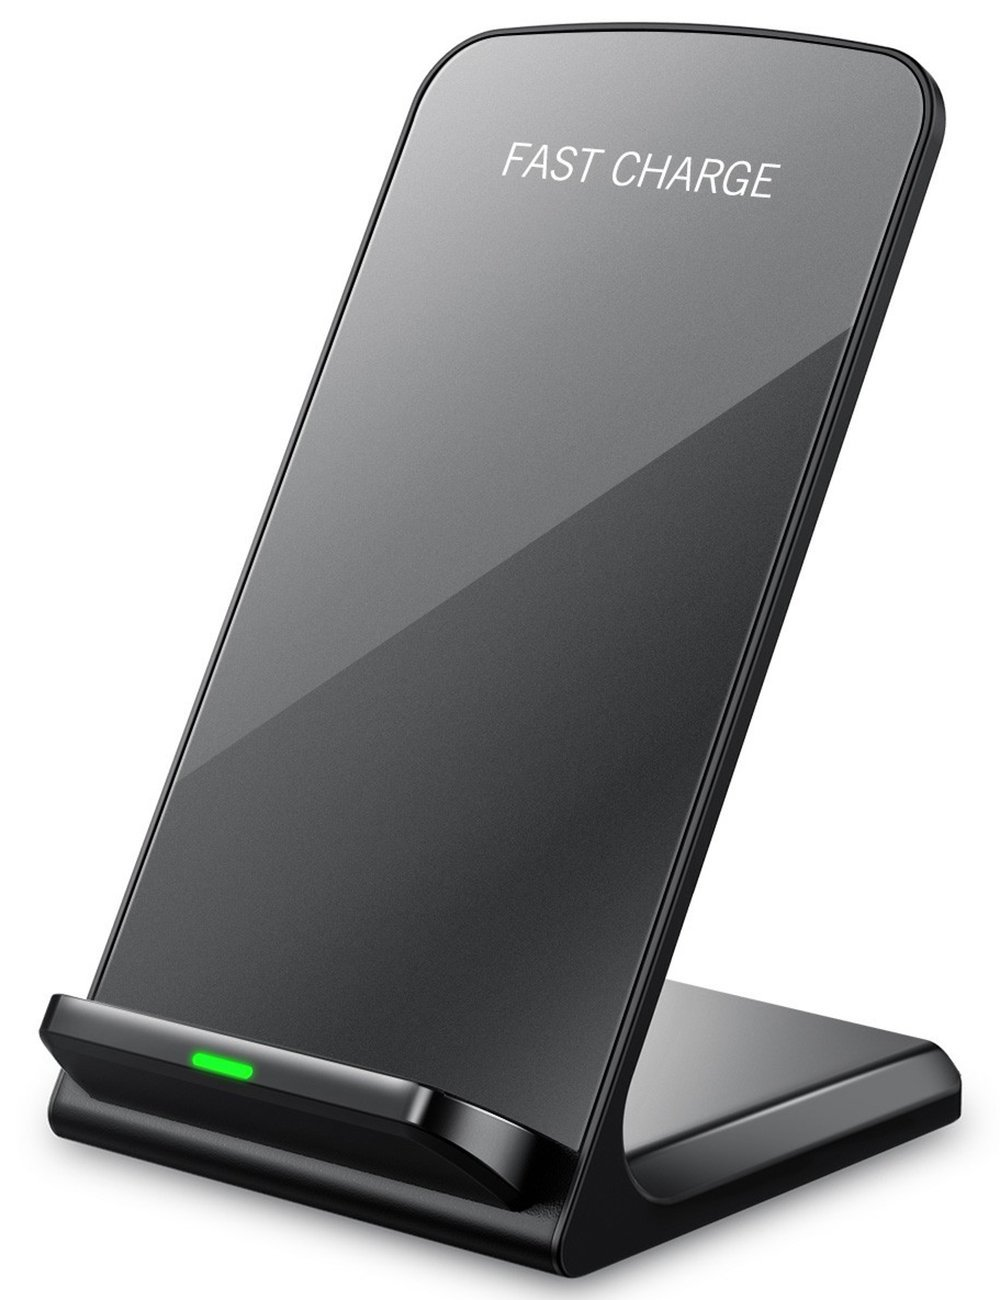 5 Best Wireless Chargers For LG G7 ThinQ - Fliptroniks